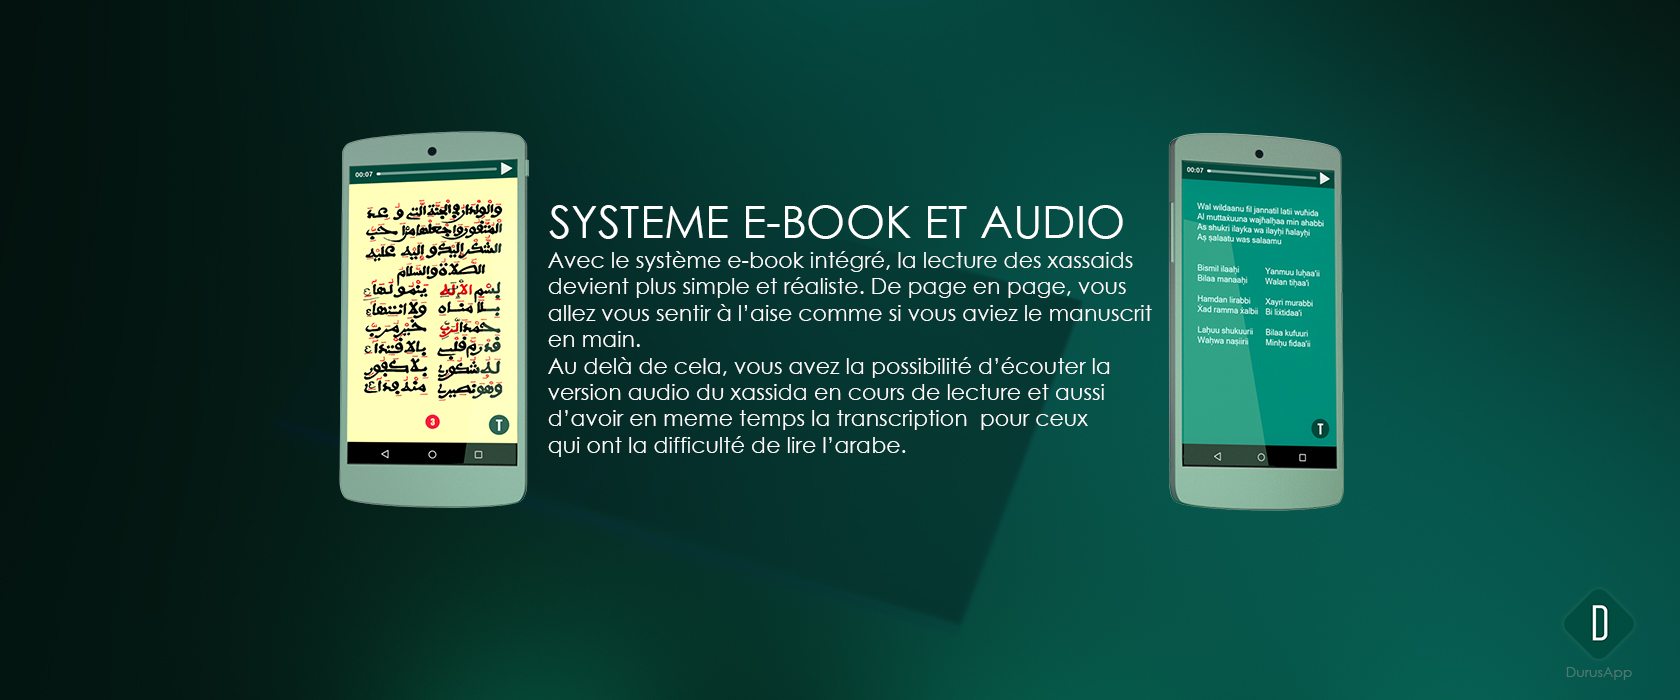 Systeme e-book et audio